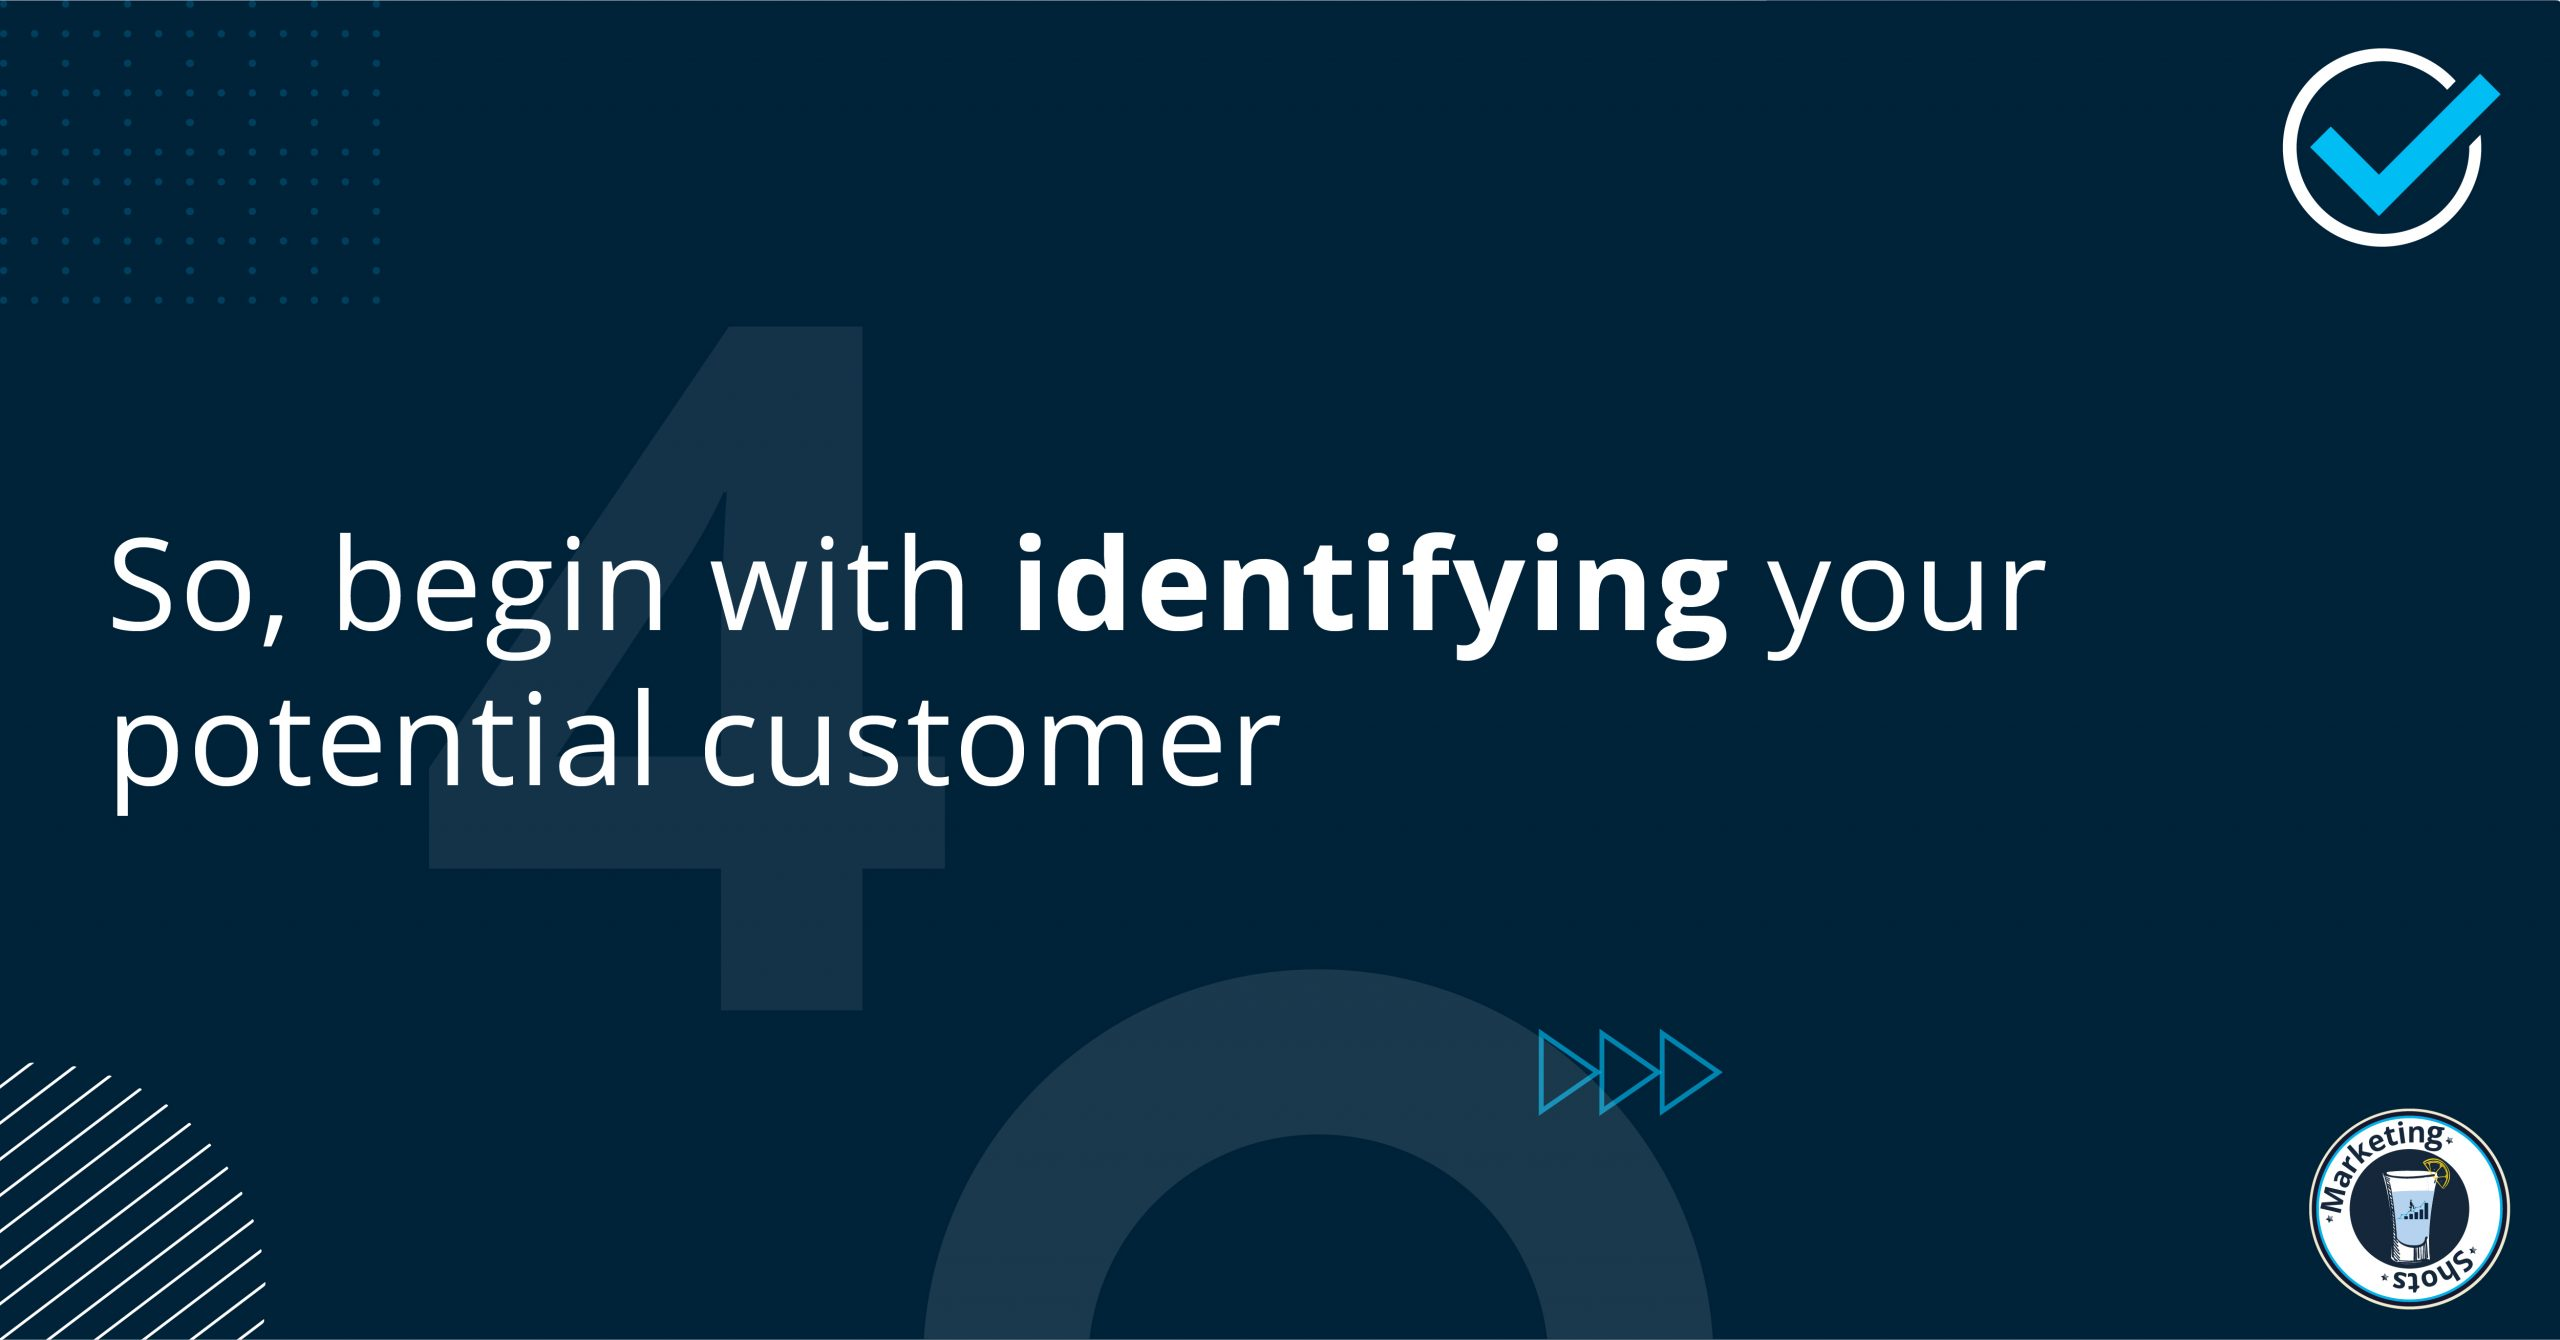 Identify your potential customer